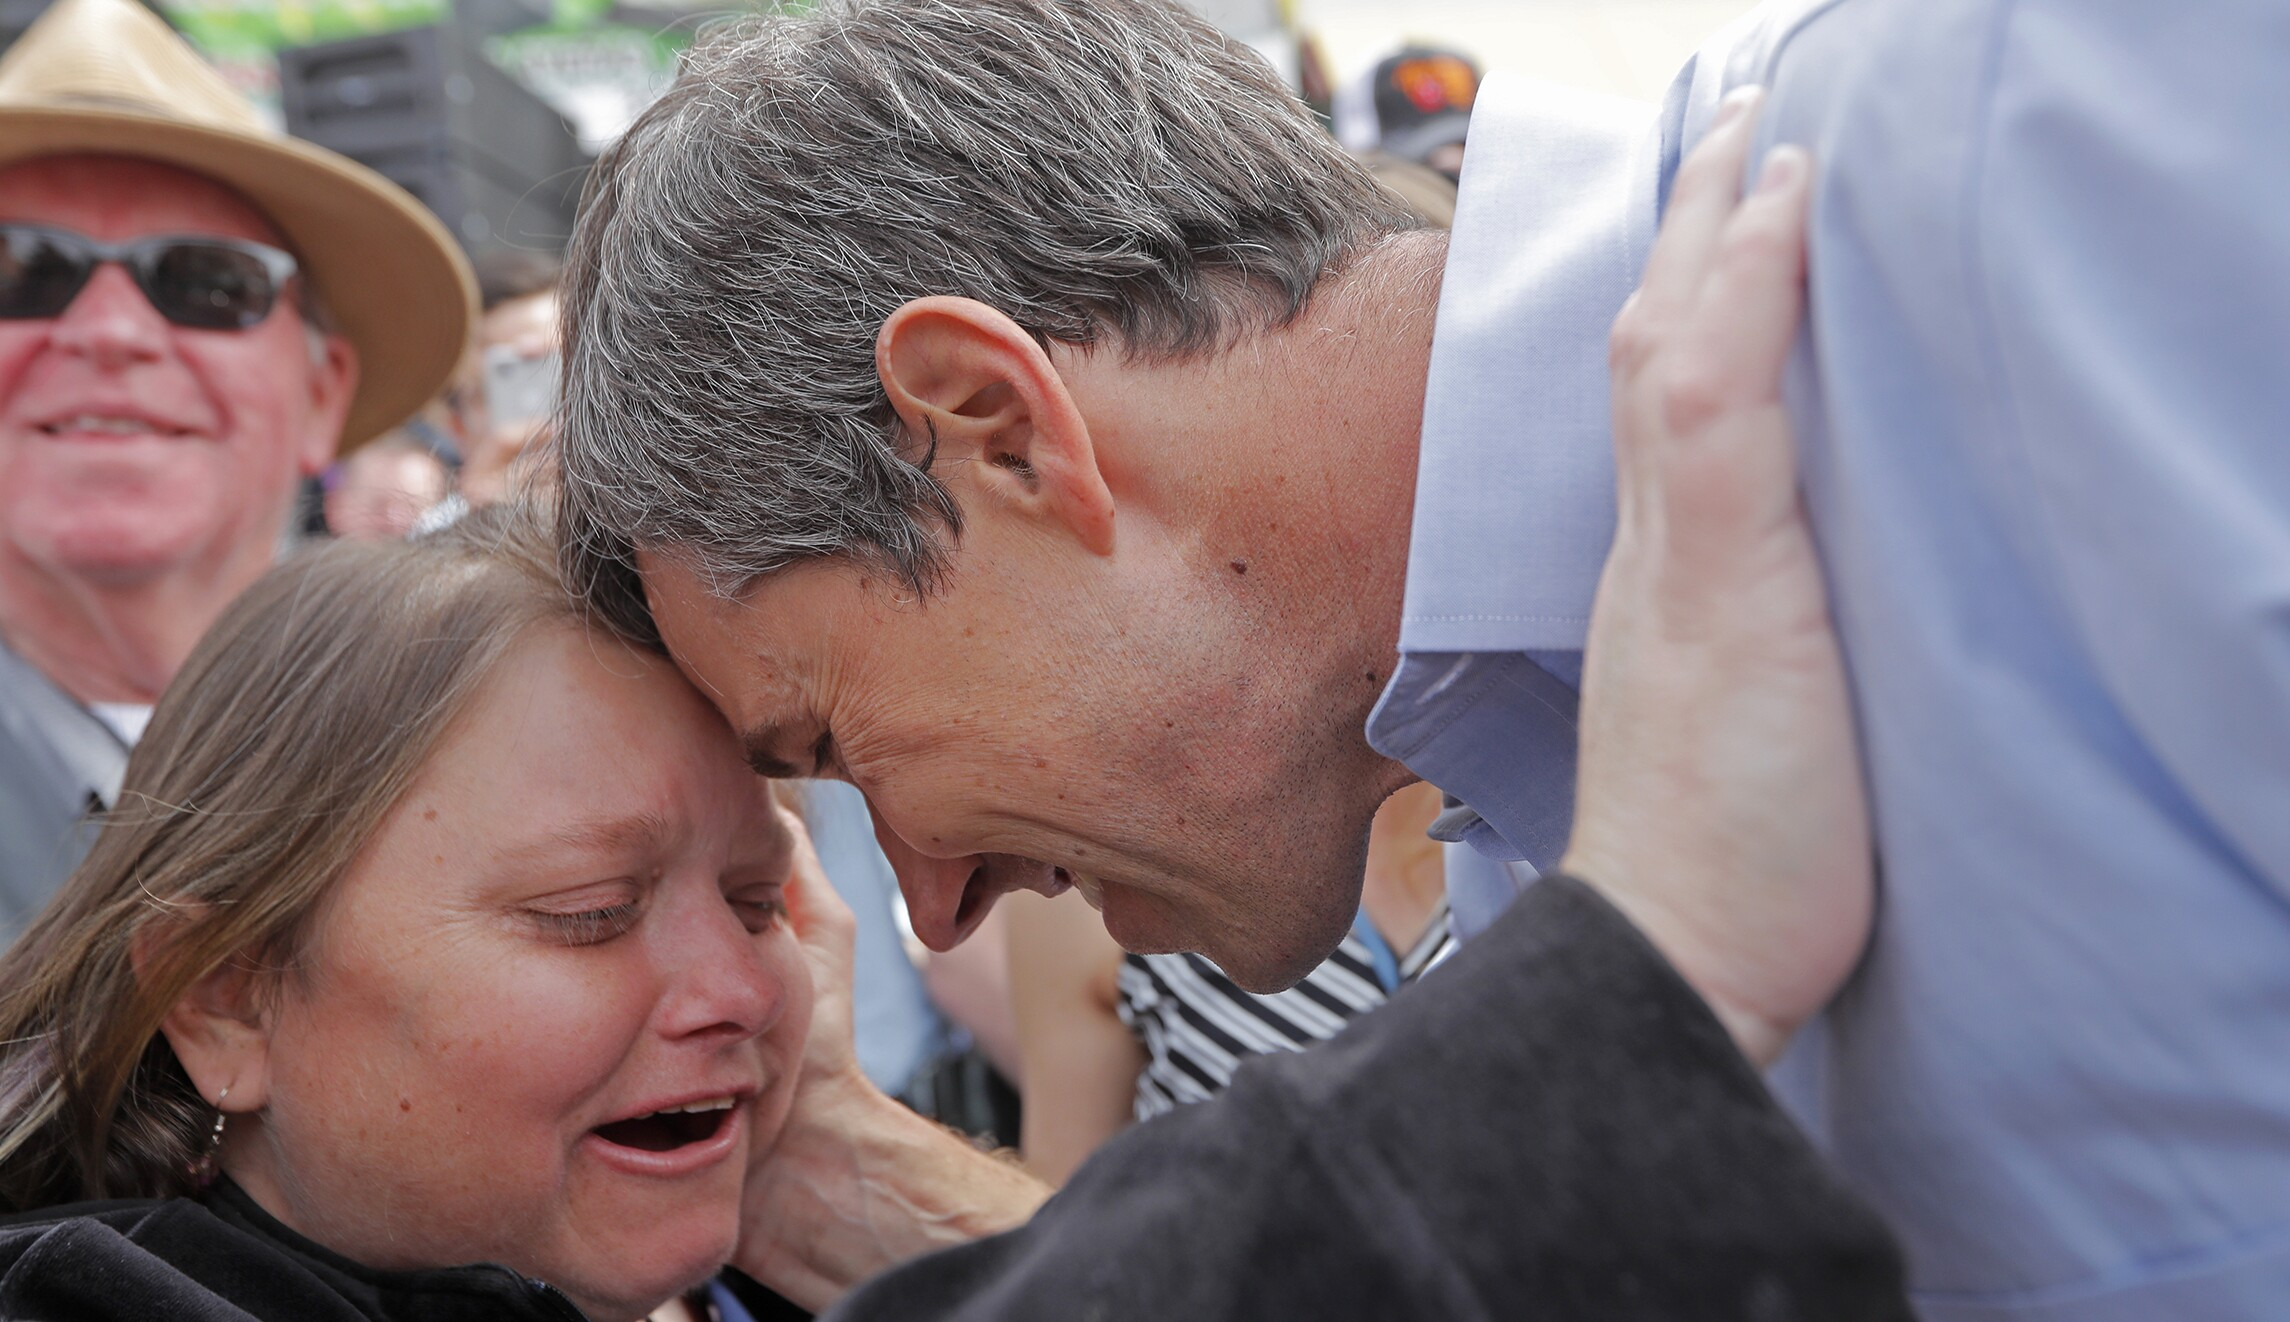 'No greater advocate': Beto O'Rourke hails intellectually impaired sister Erin as he unveils disability plan